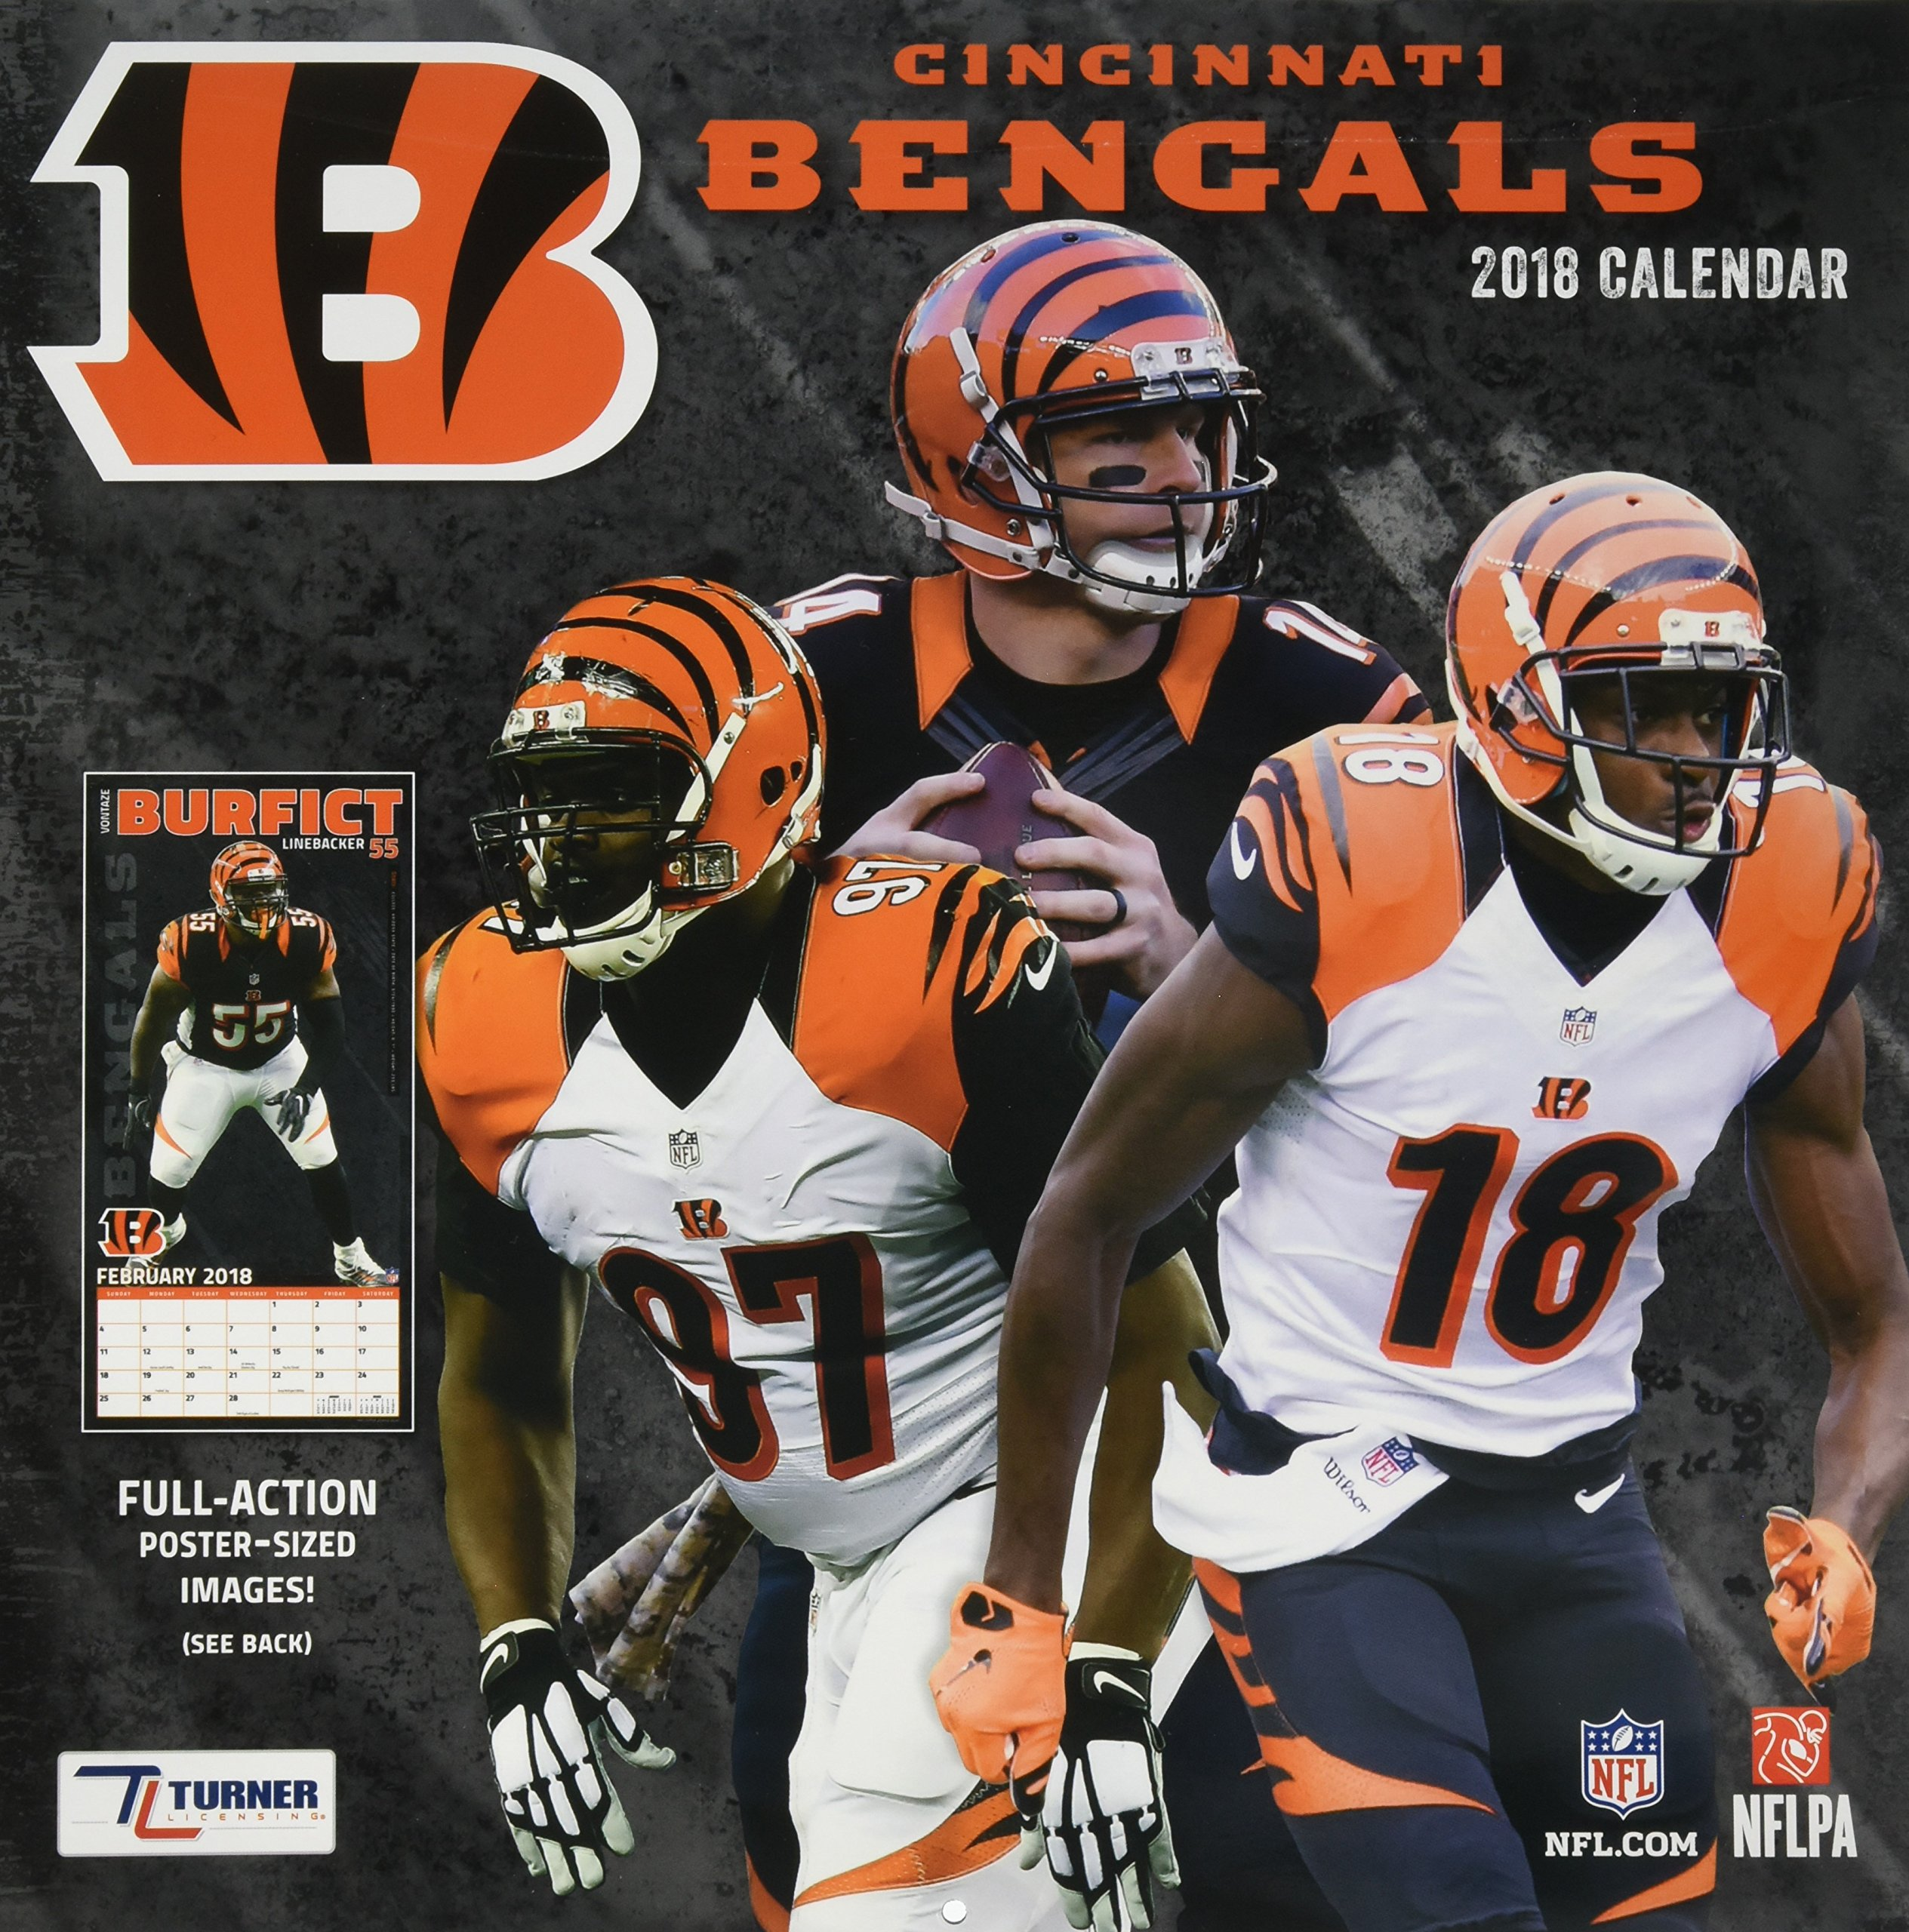 cincinnati-bengals-2018-calendar-full-action-poster-sized-images